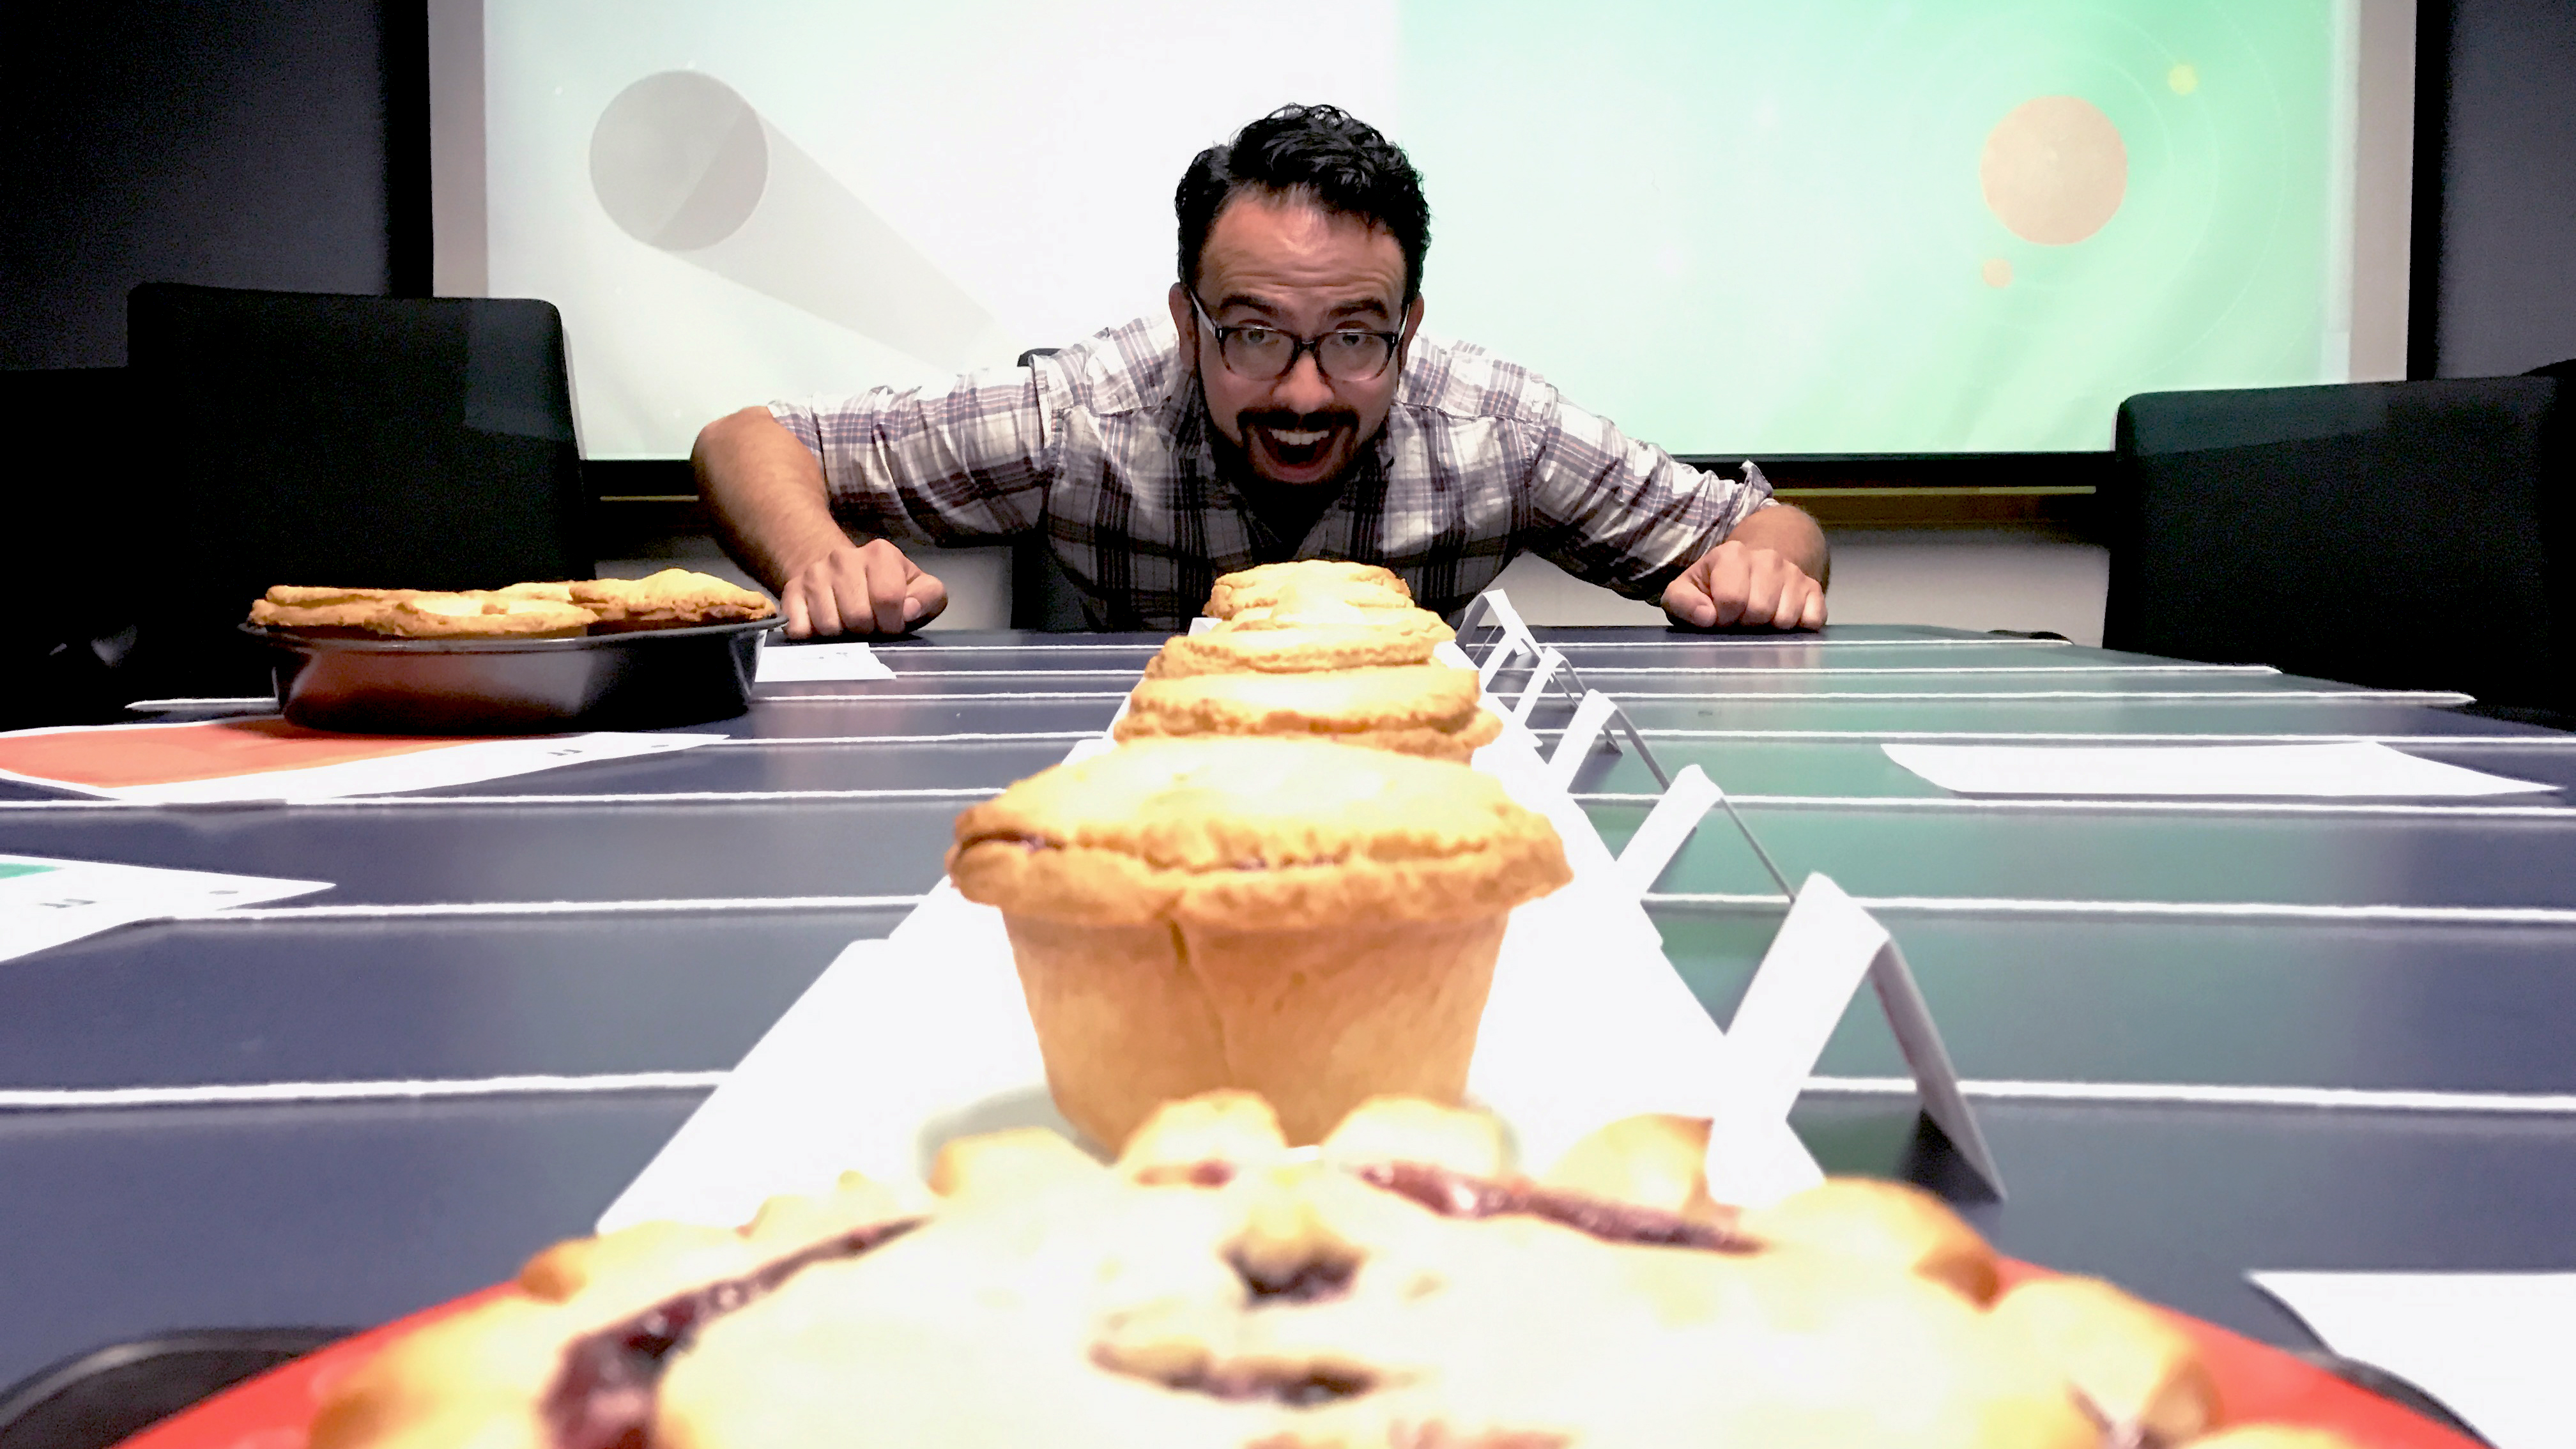 Share: Pi Day: What's Going 'Round